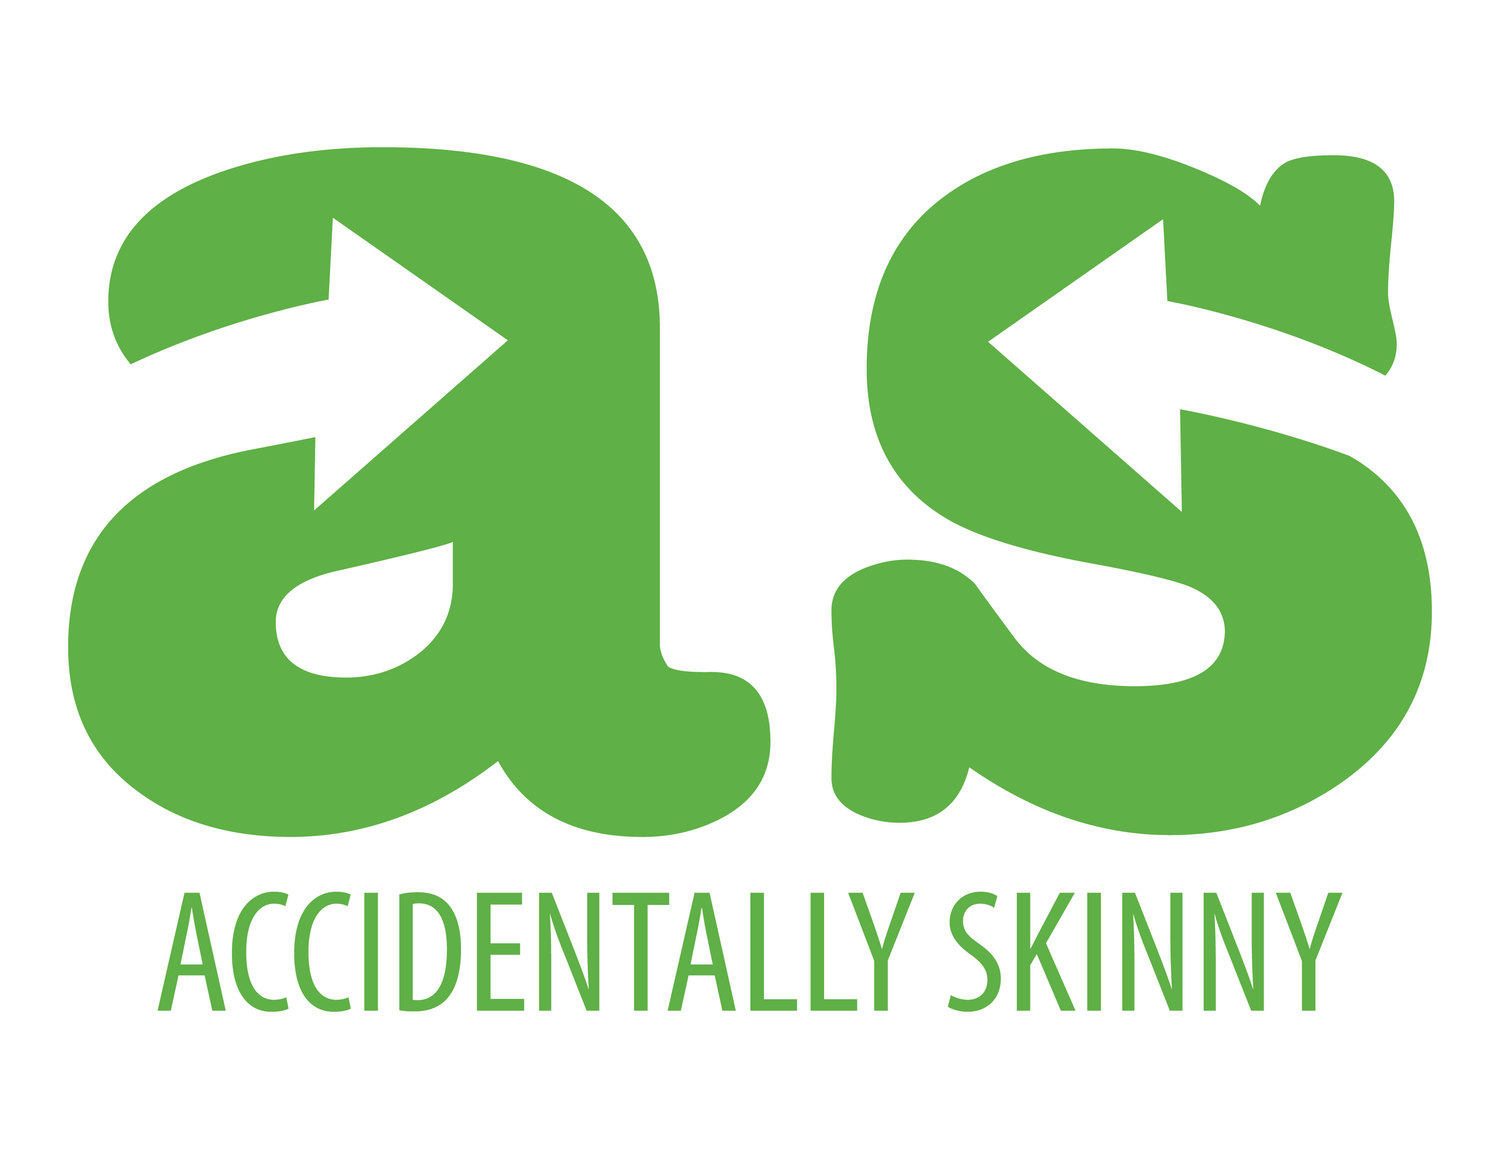 Accidentally Skinny